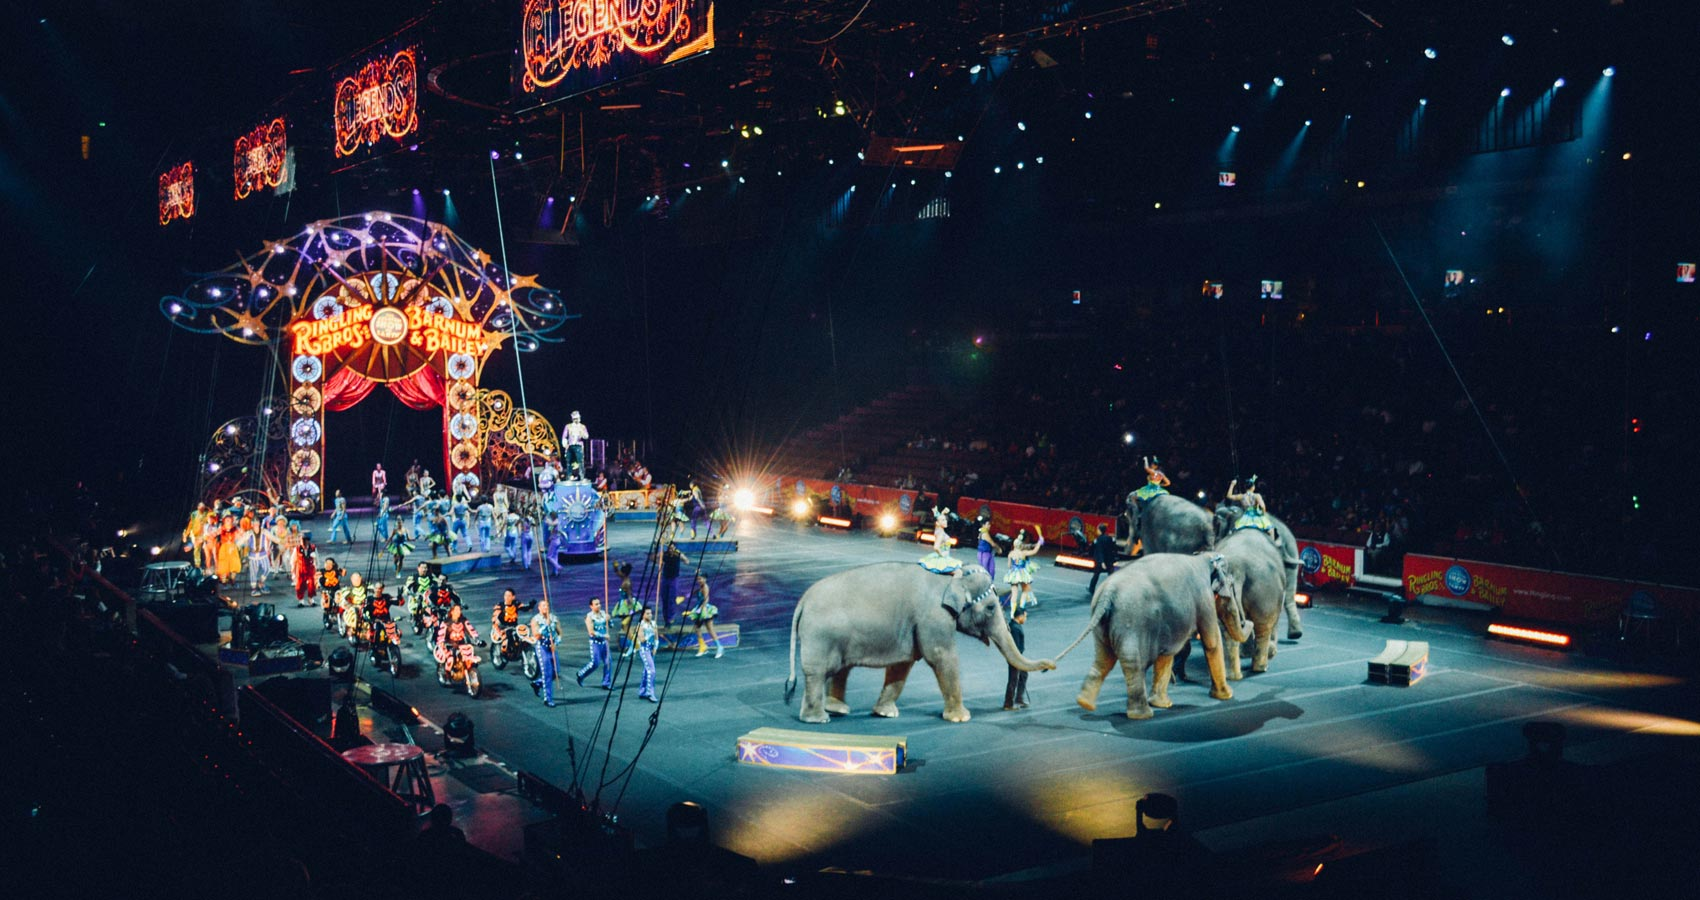 The Day The Circus Came To Town, poem by Roger Turner at Spillwords.com